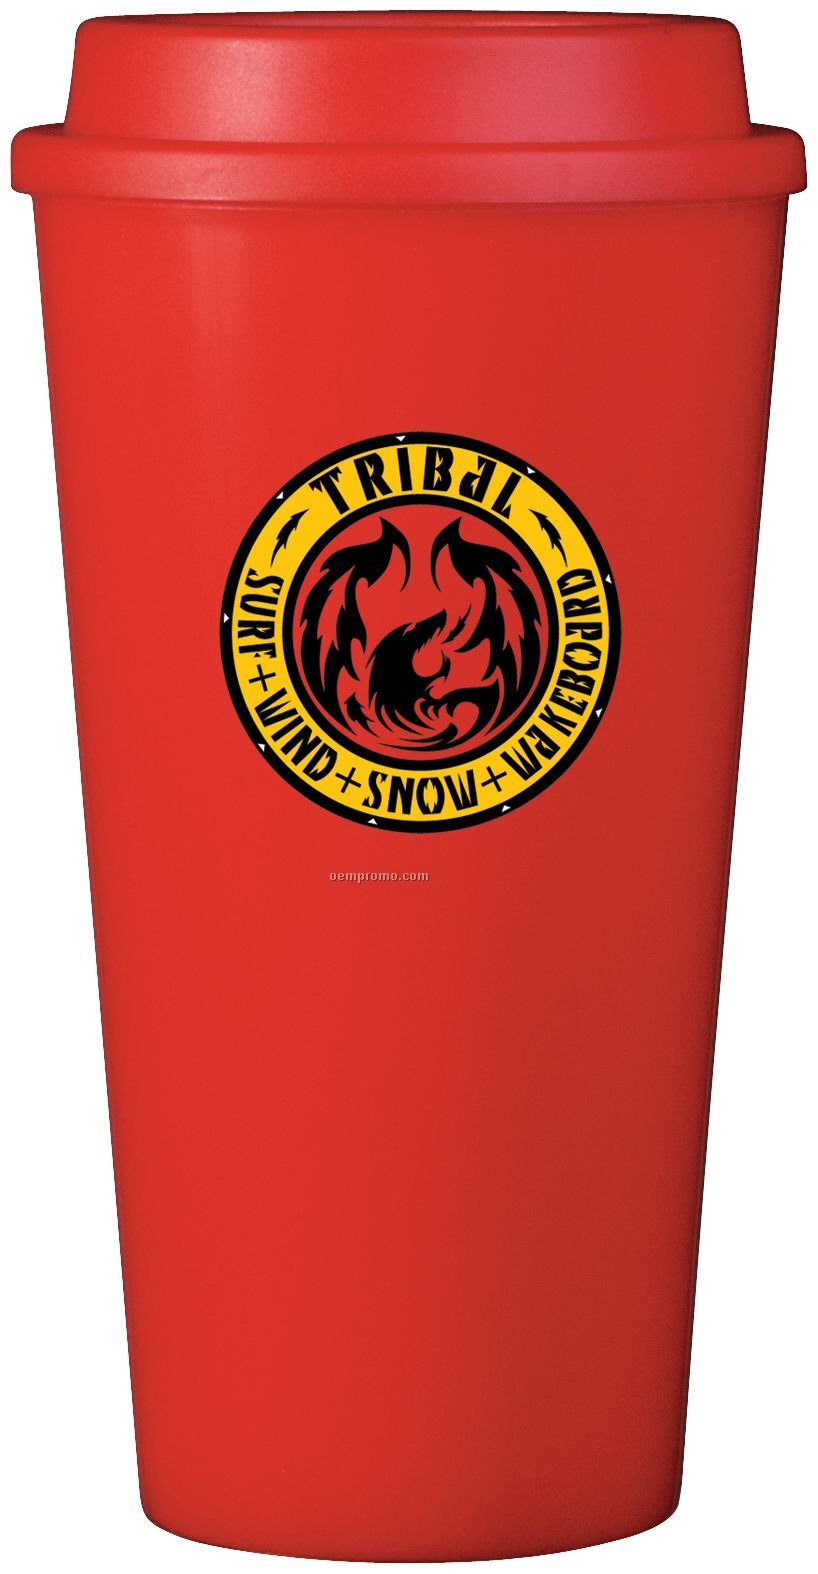 16 Oz. Red Plastic Cup2go Cup